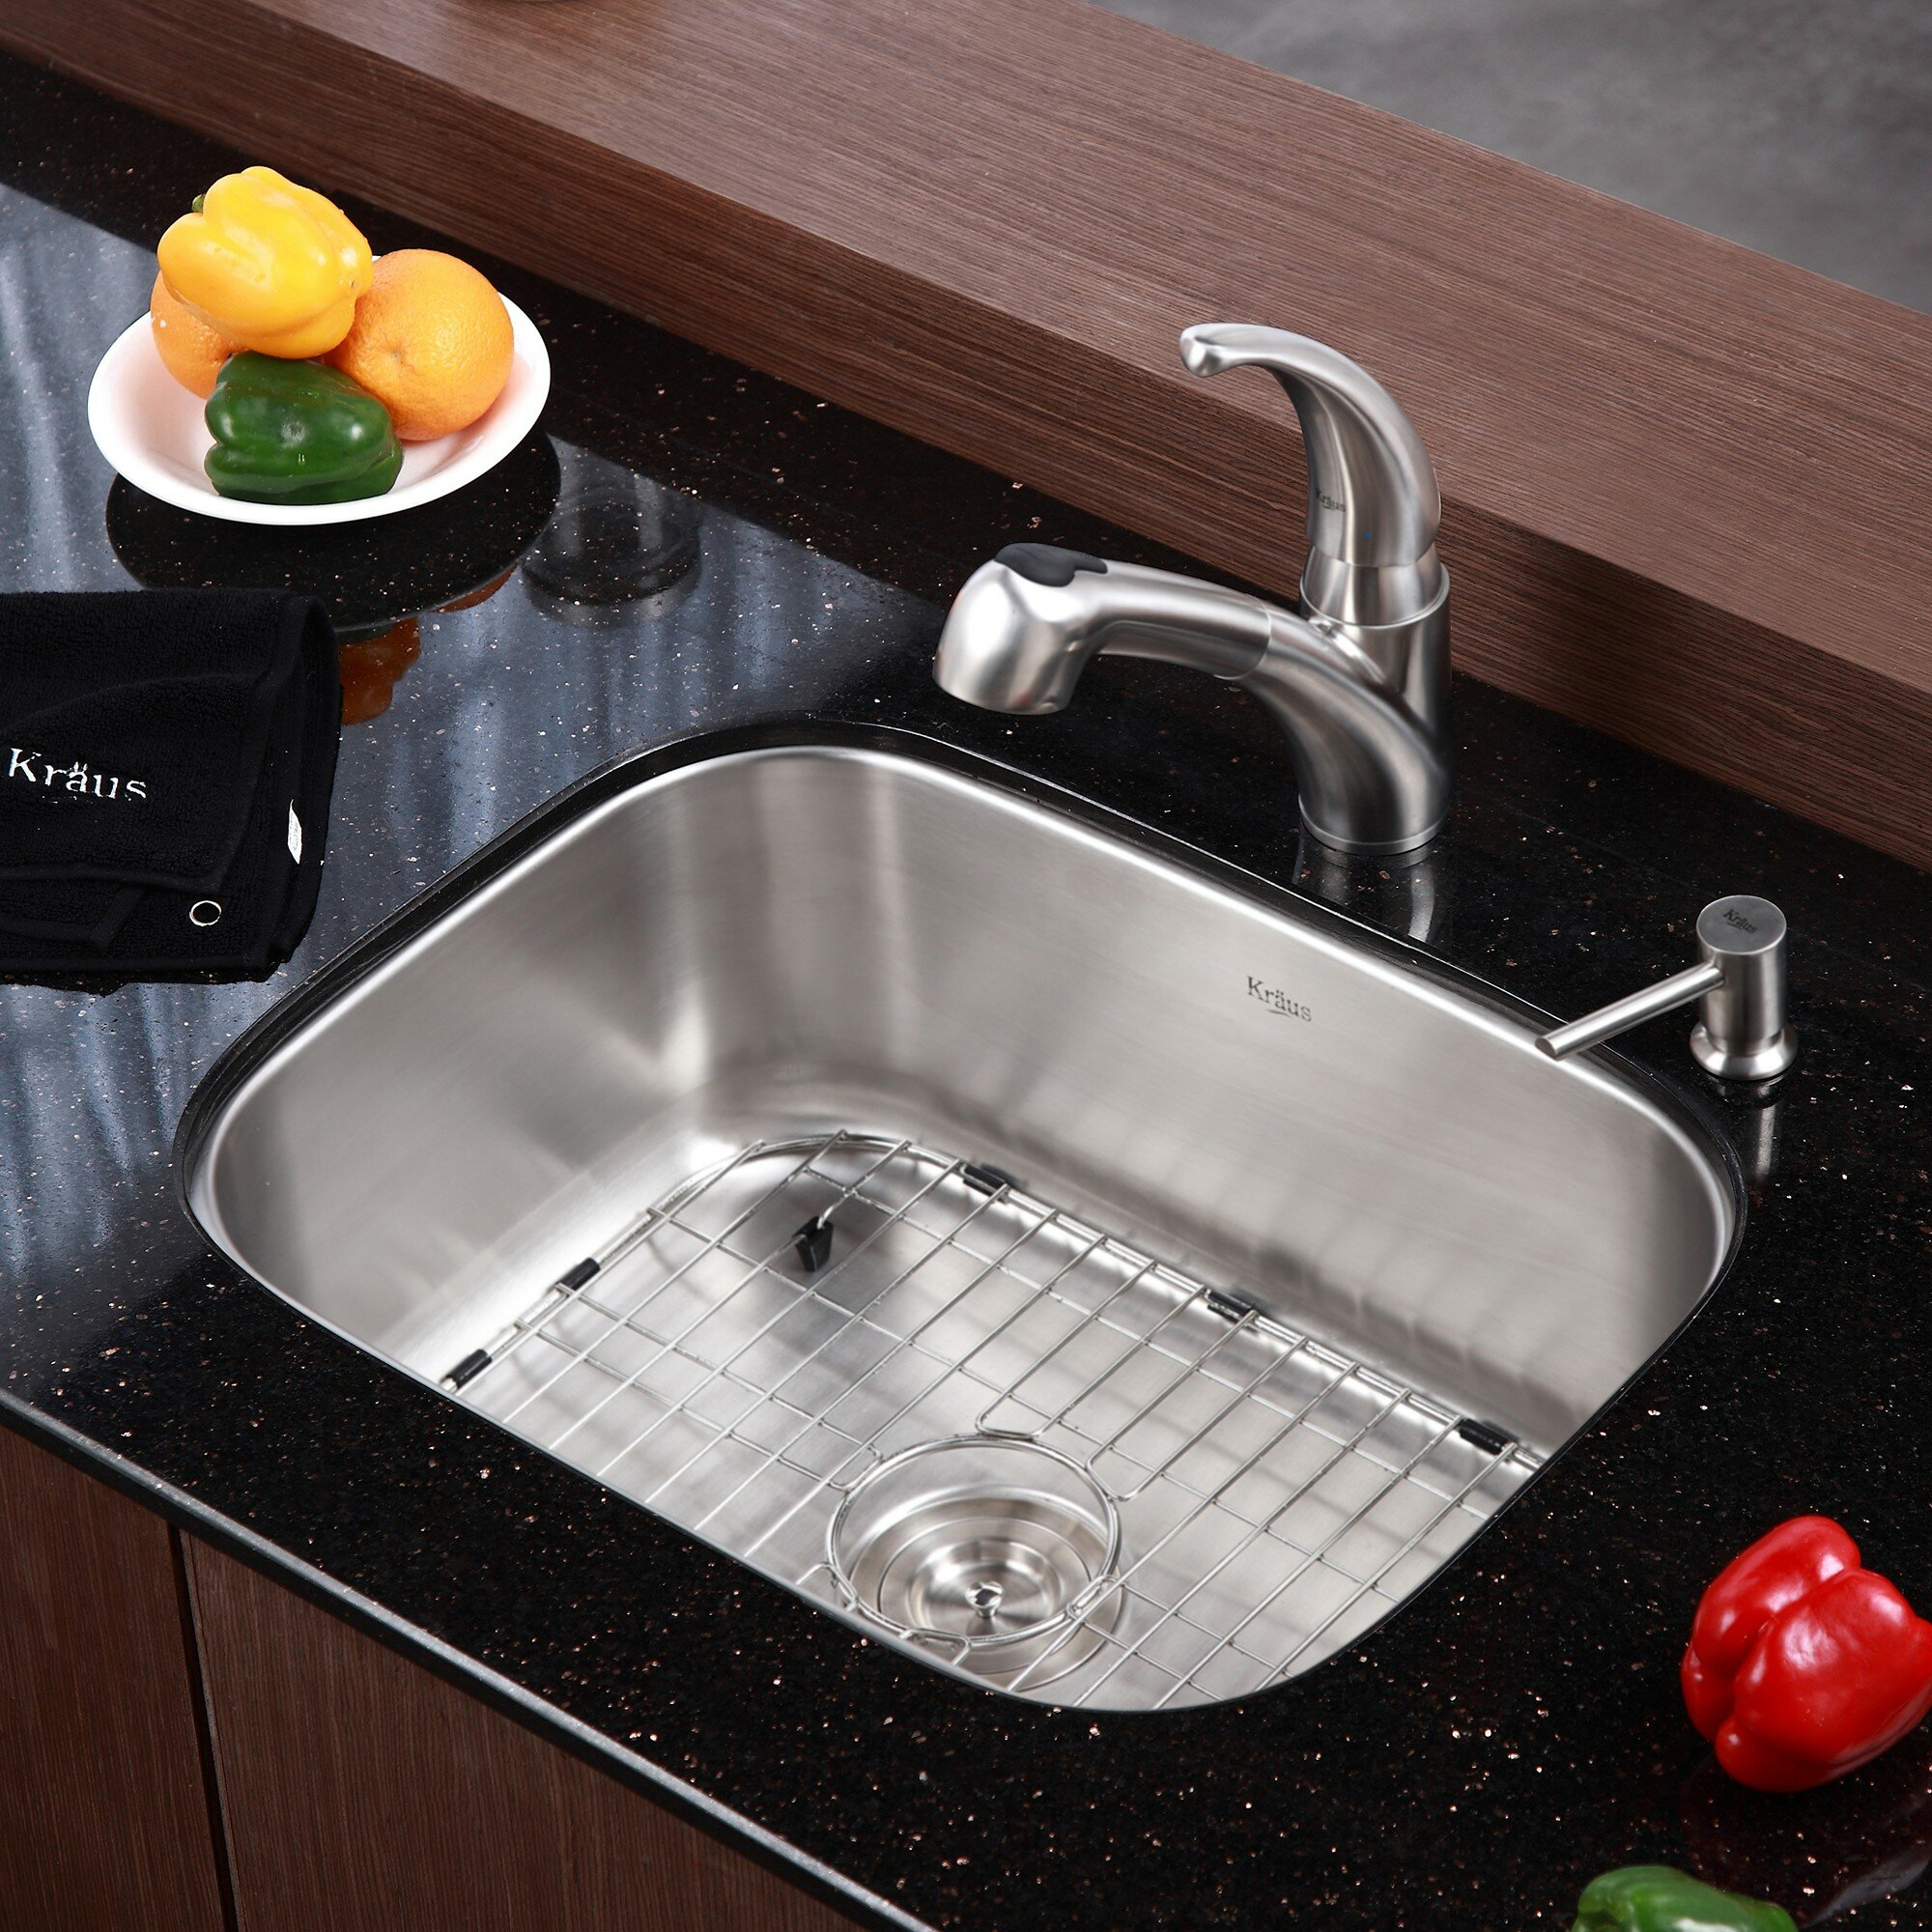 Stainless Steel Kitchen Sinks Top Mount | Kitchen Sinks Stainless Steel | Brushed Stainless Steel Undermount Kitchen Sink